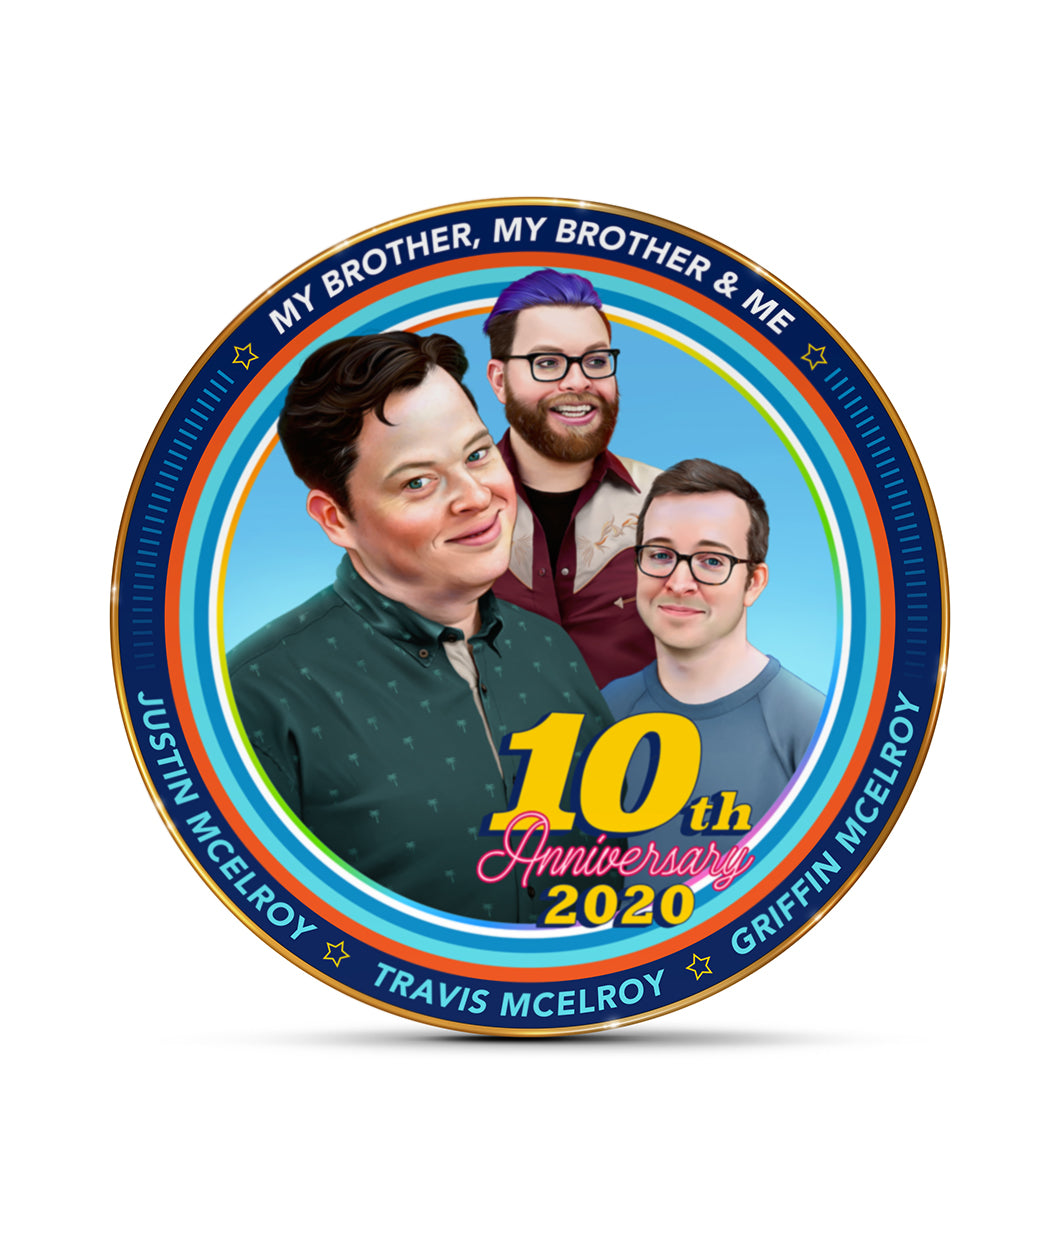 MBMBaM 10th Anniversary Commemorative Plate